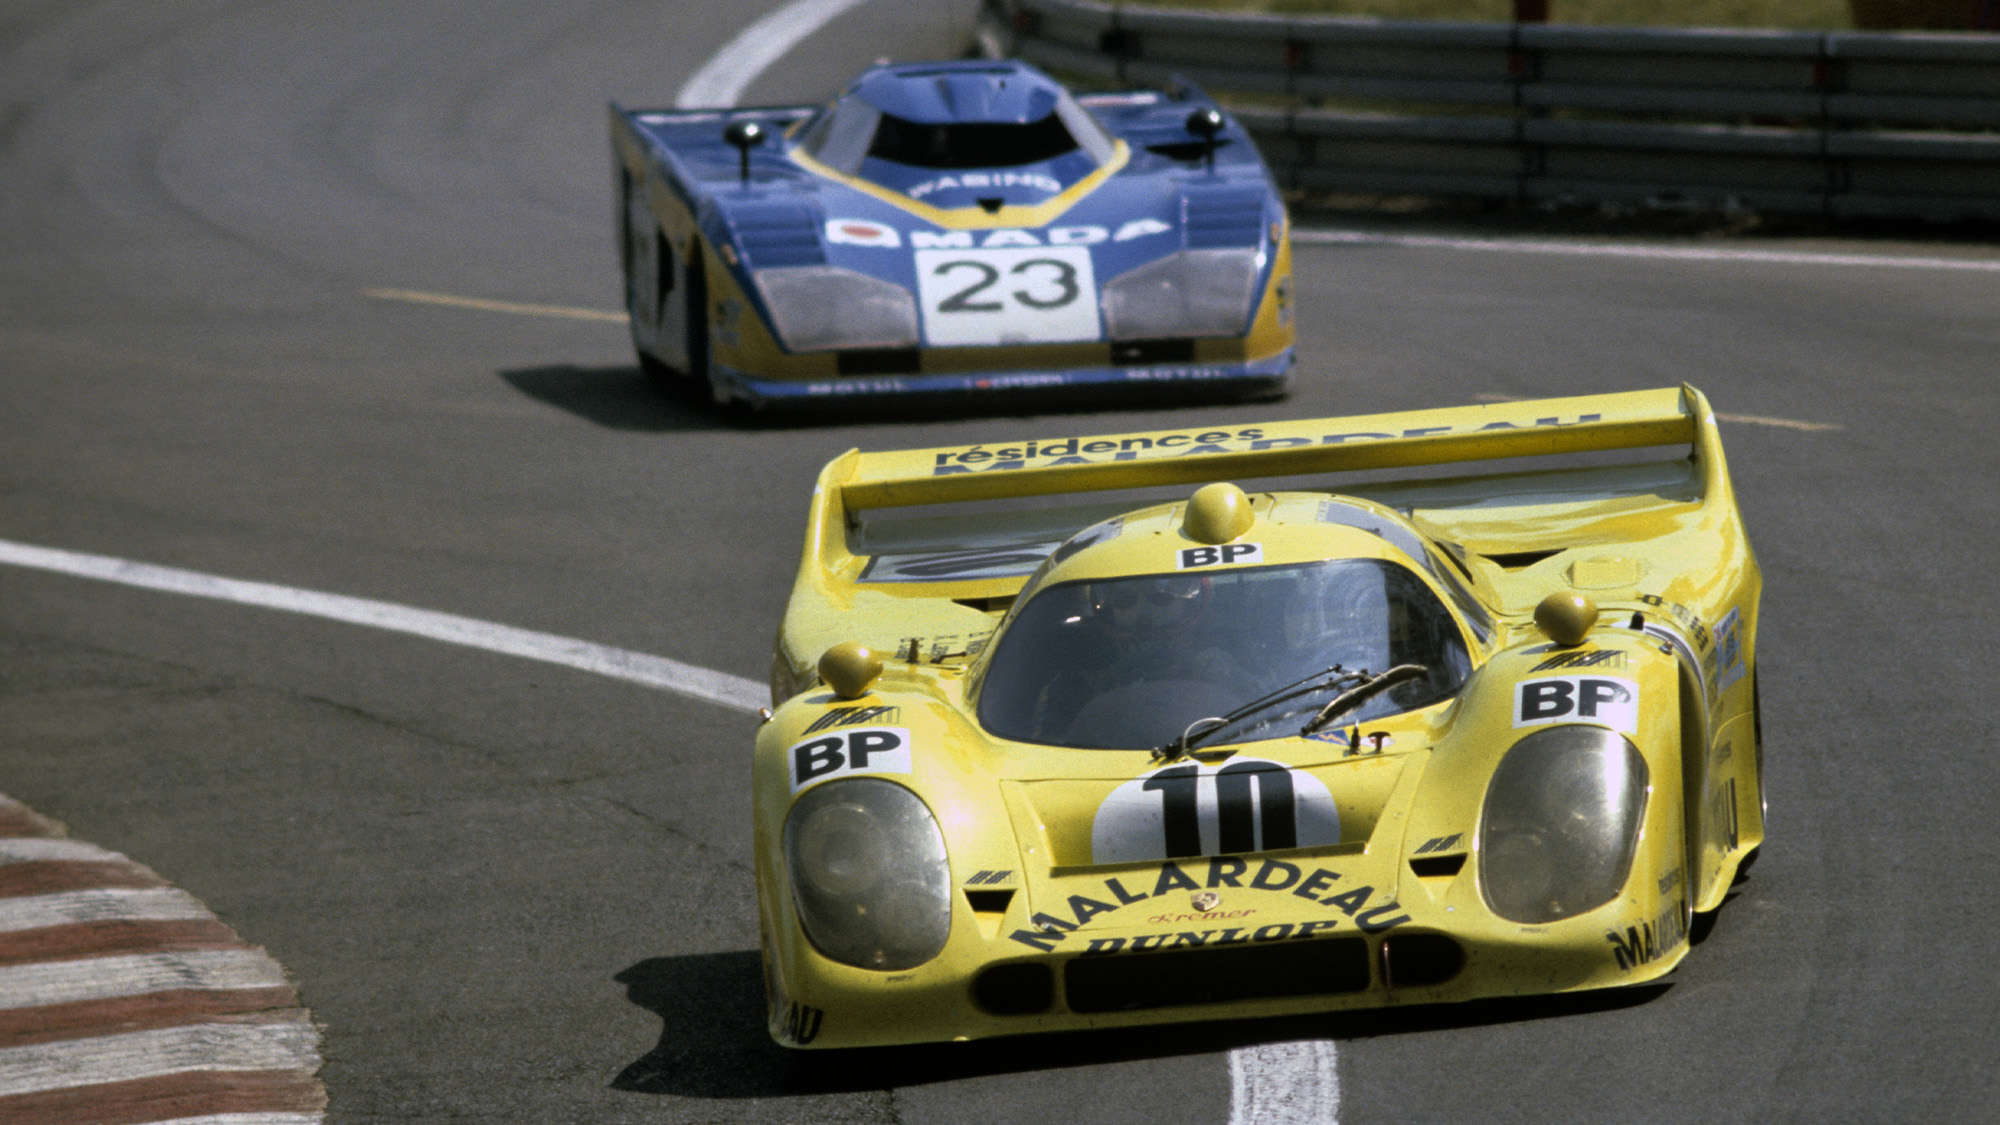 Kremer 917 in the 1981 Le Mans 24 Hours